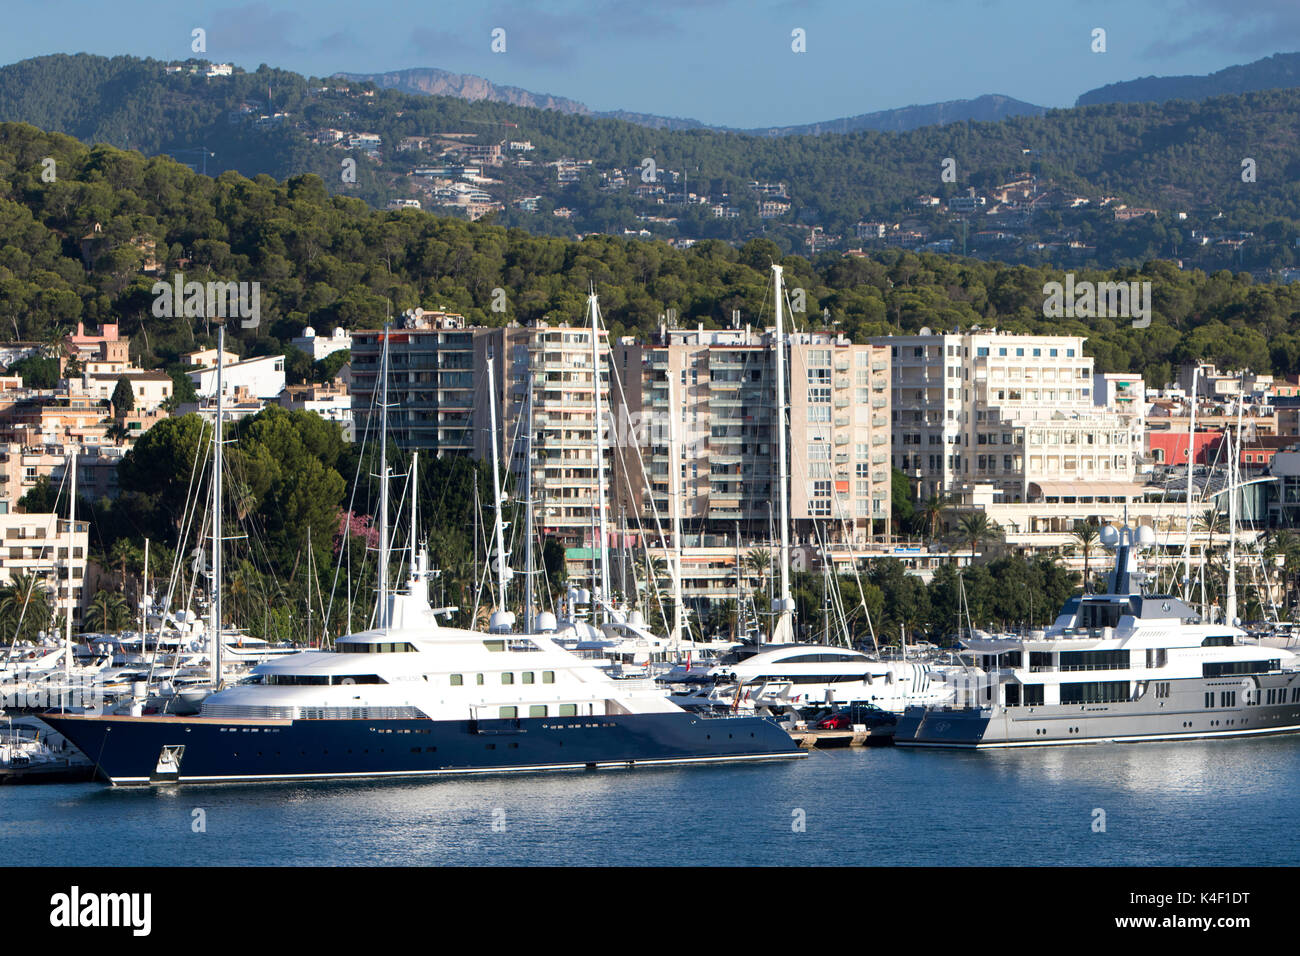 The Limitless one of the world's largest private superyachts at The Bay of Palma de Mallorca in the Balearic Islands in Spain, south coast of Majorca - Stock Image